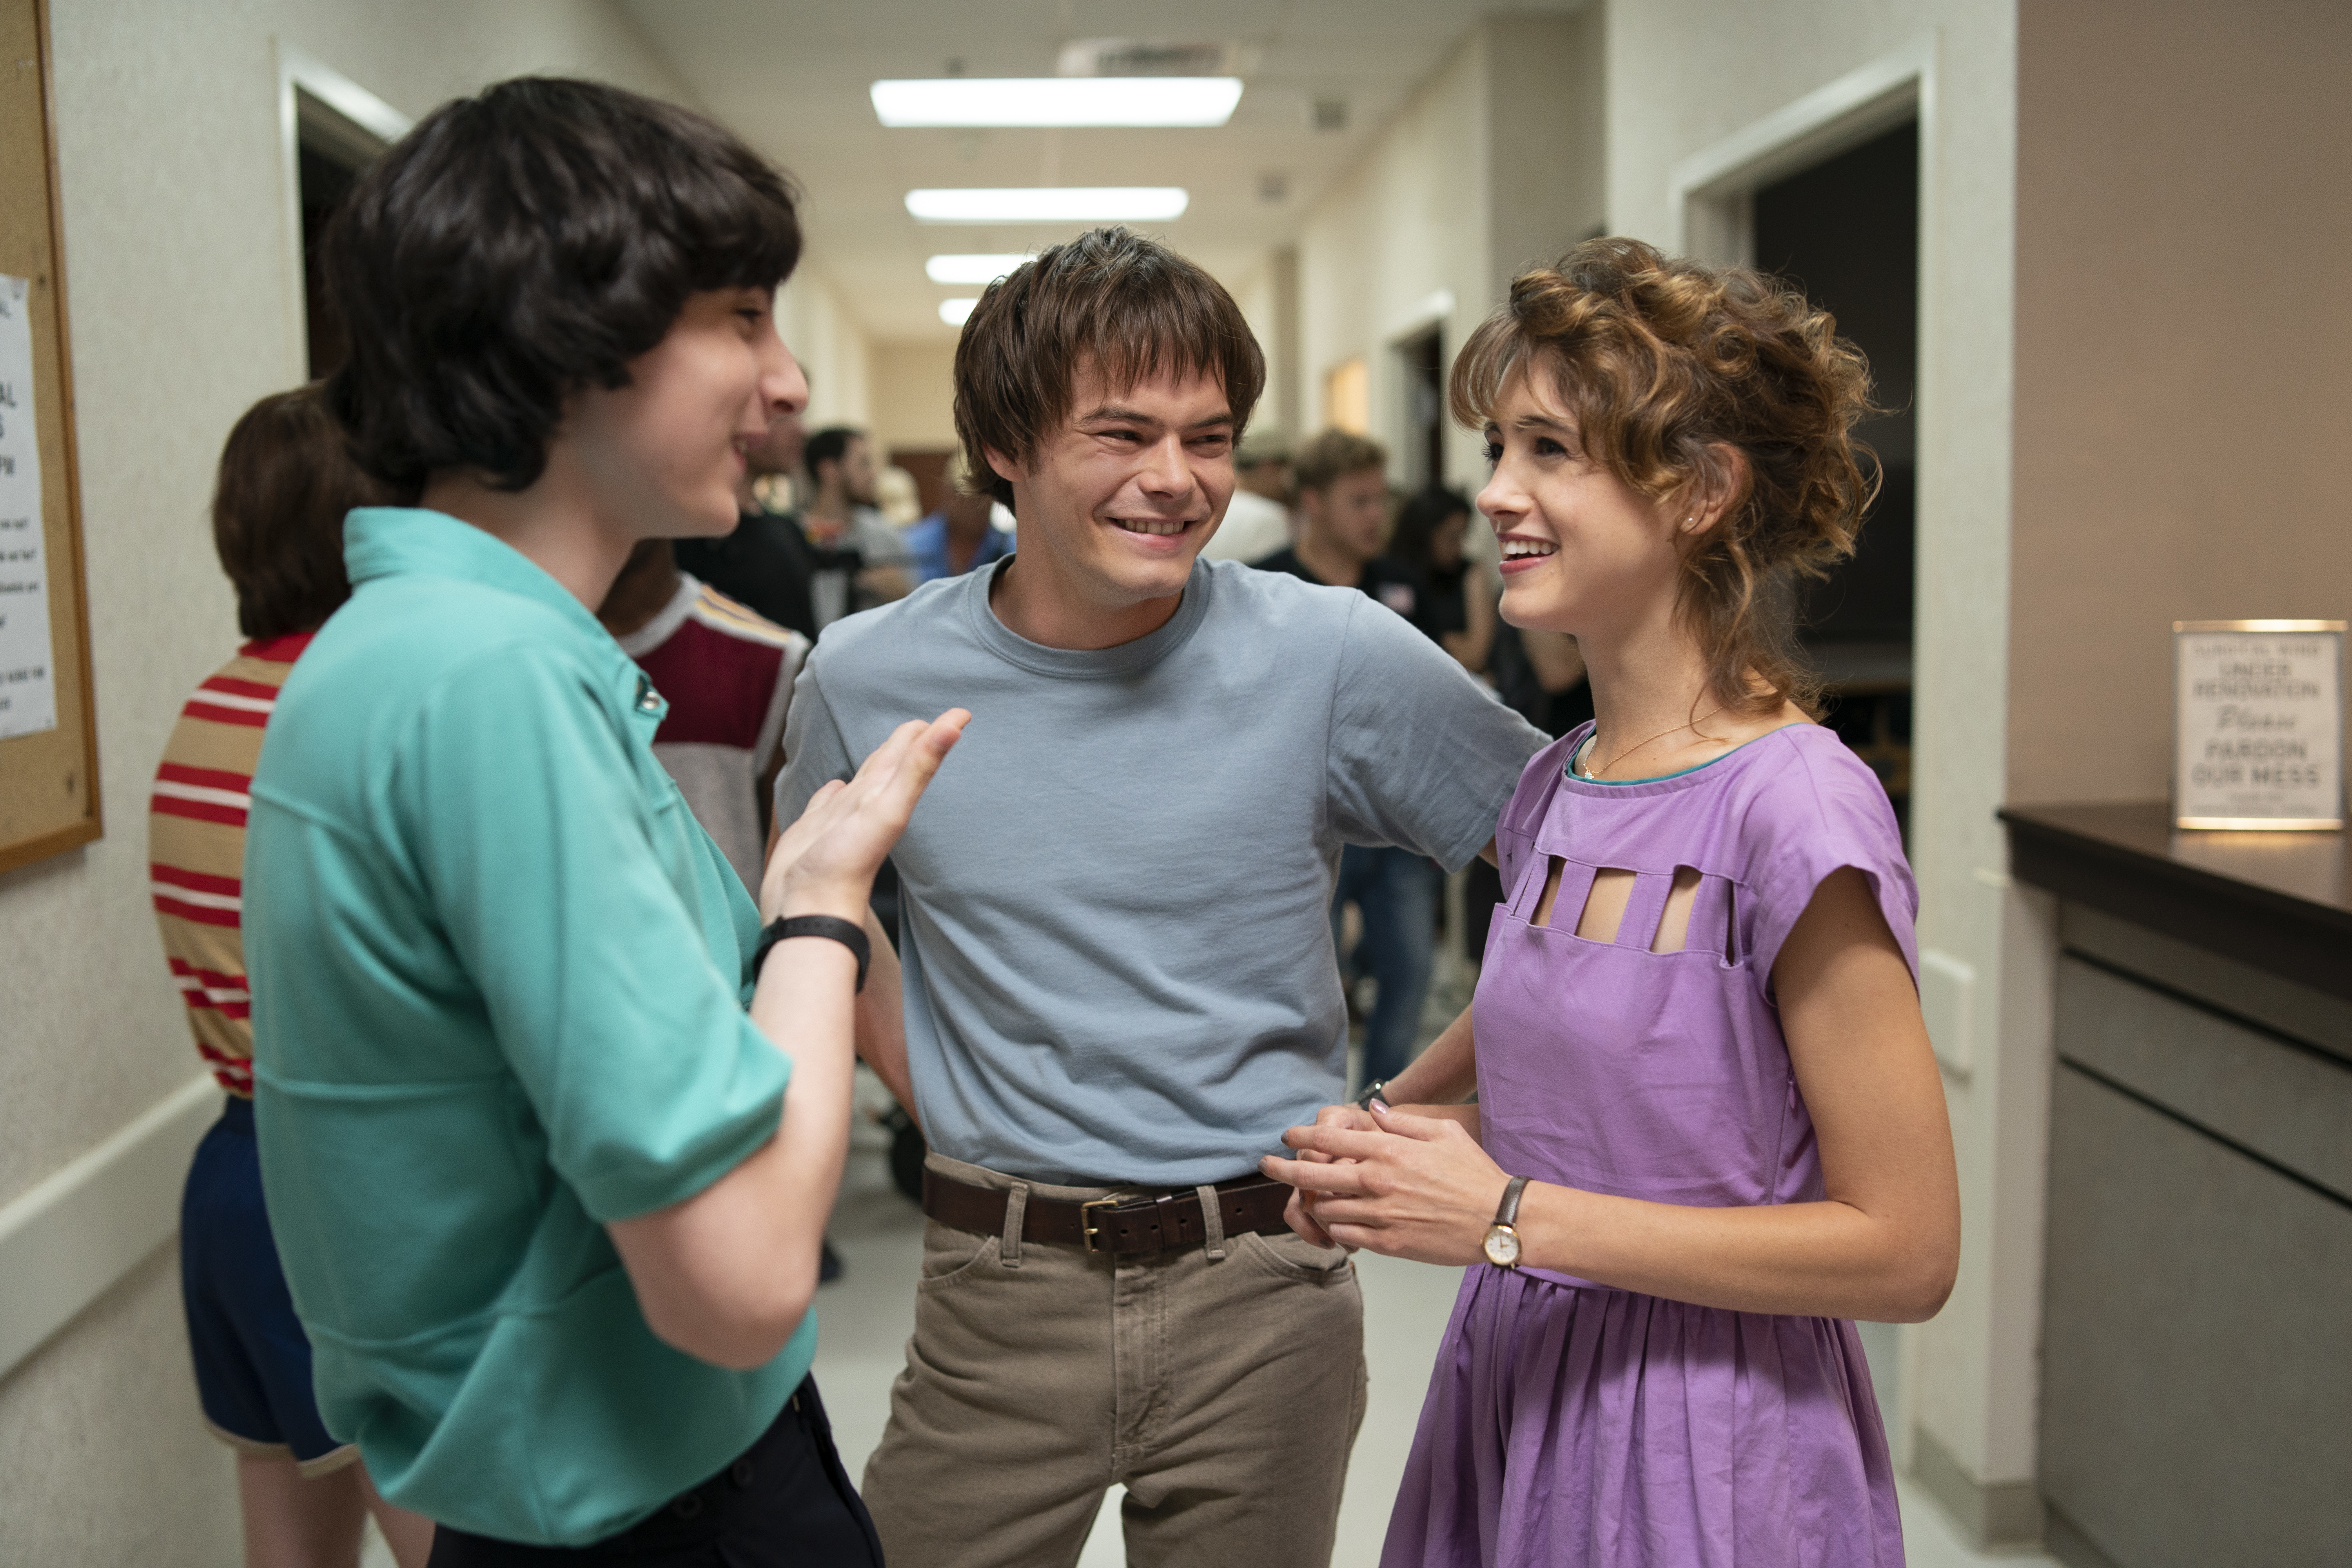 Why do we like 'Stranger Things' so much? A BYU professor